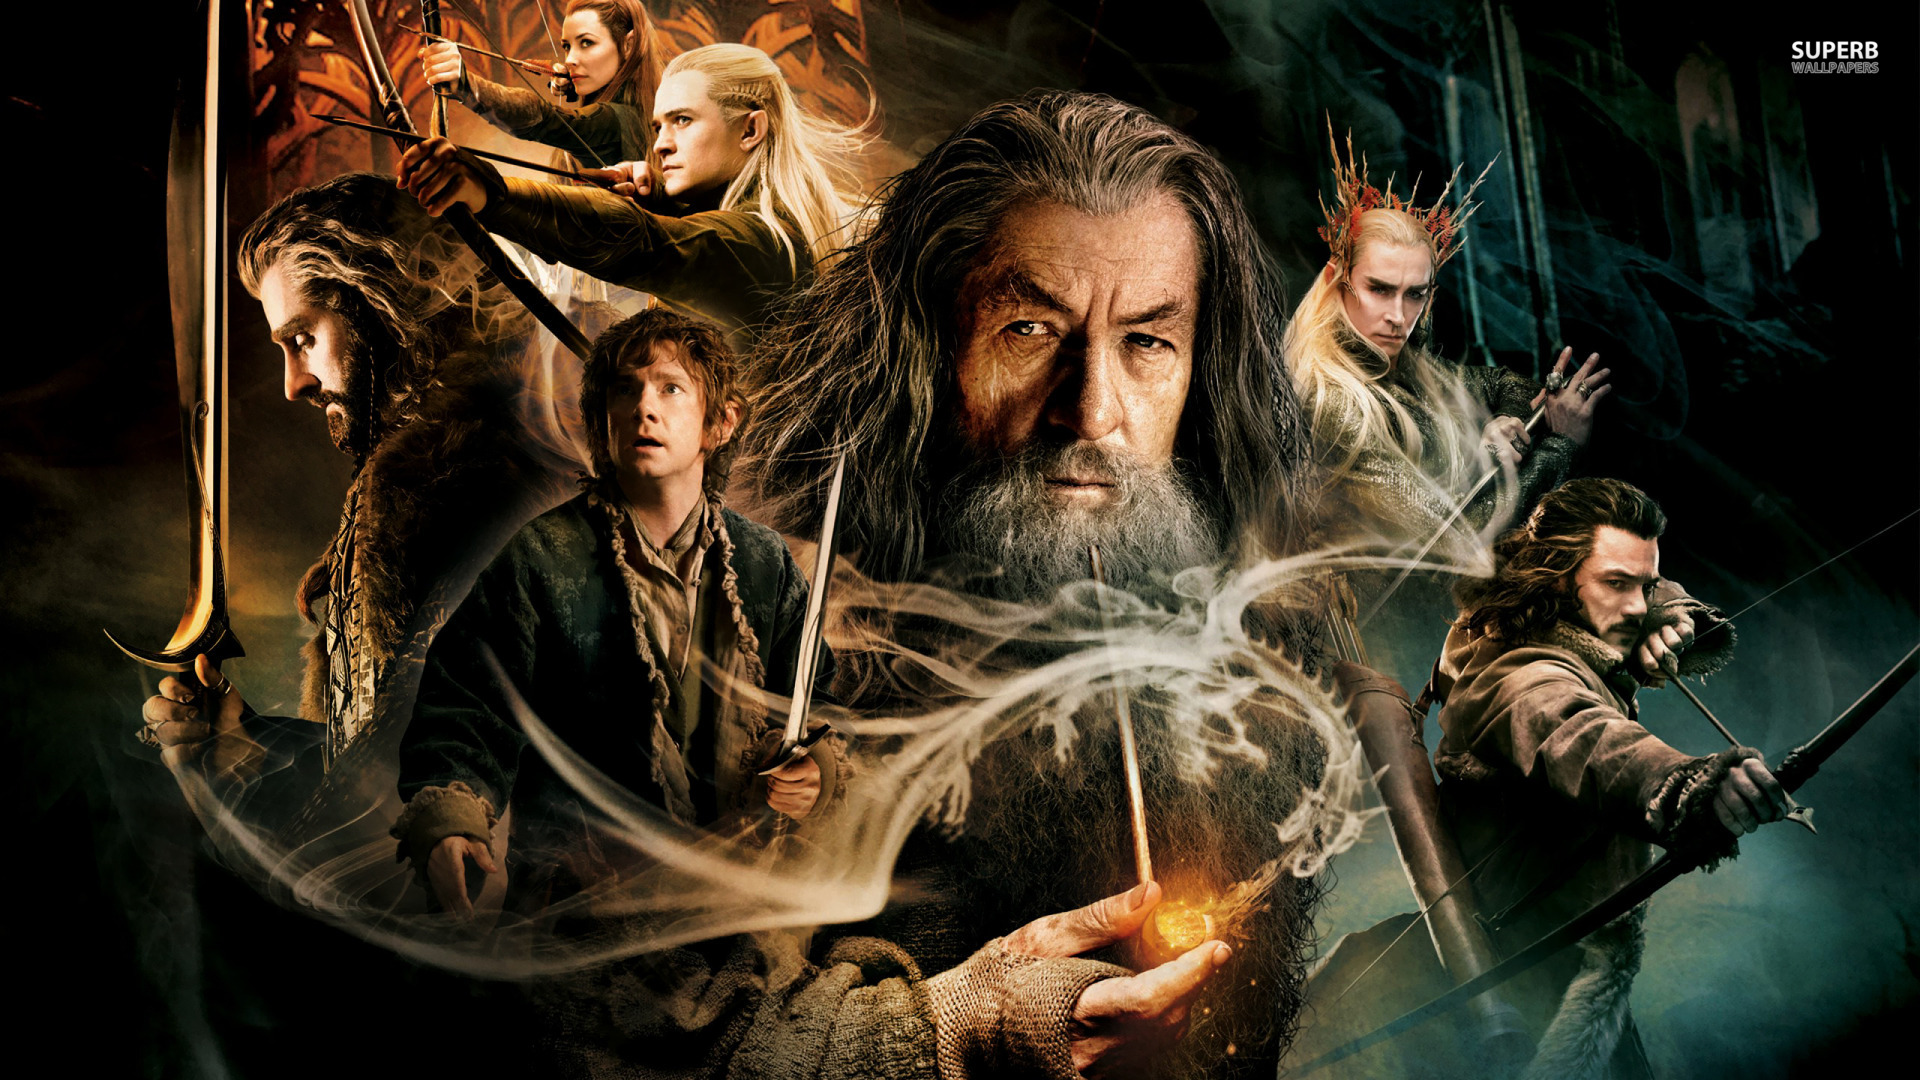 The Hobbit the Desolation of Smaug Wallpapers 1920x1080